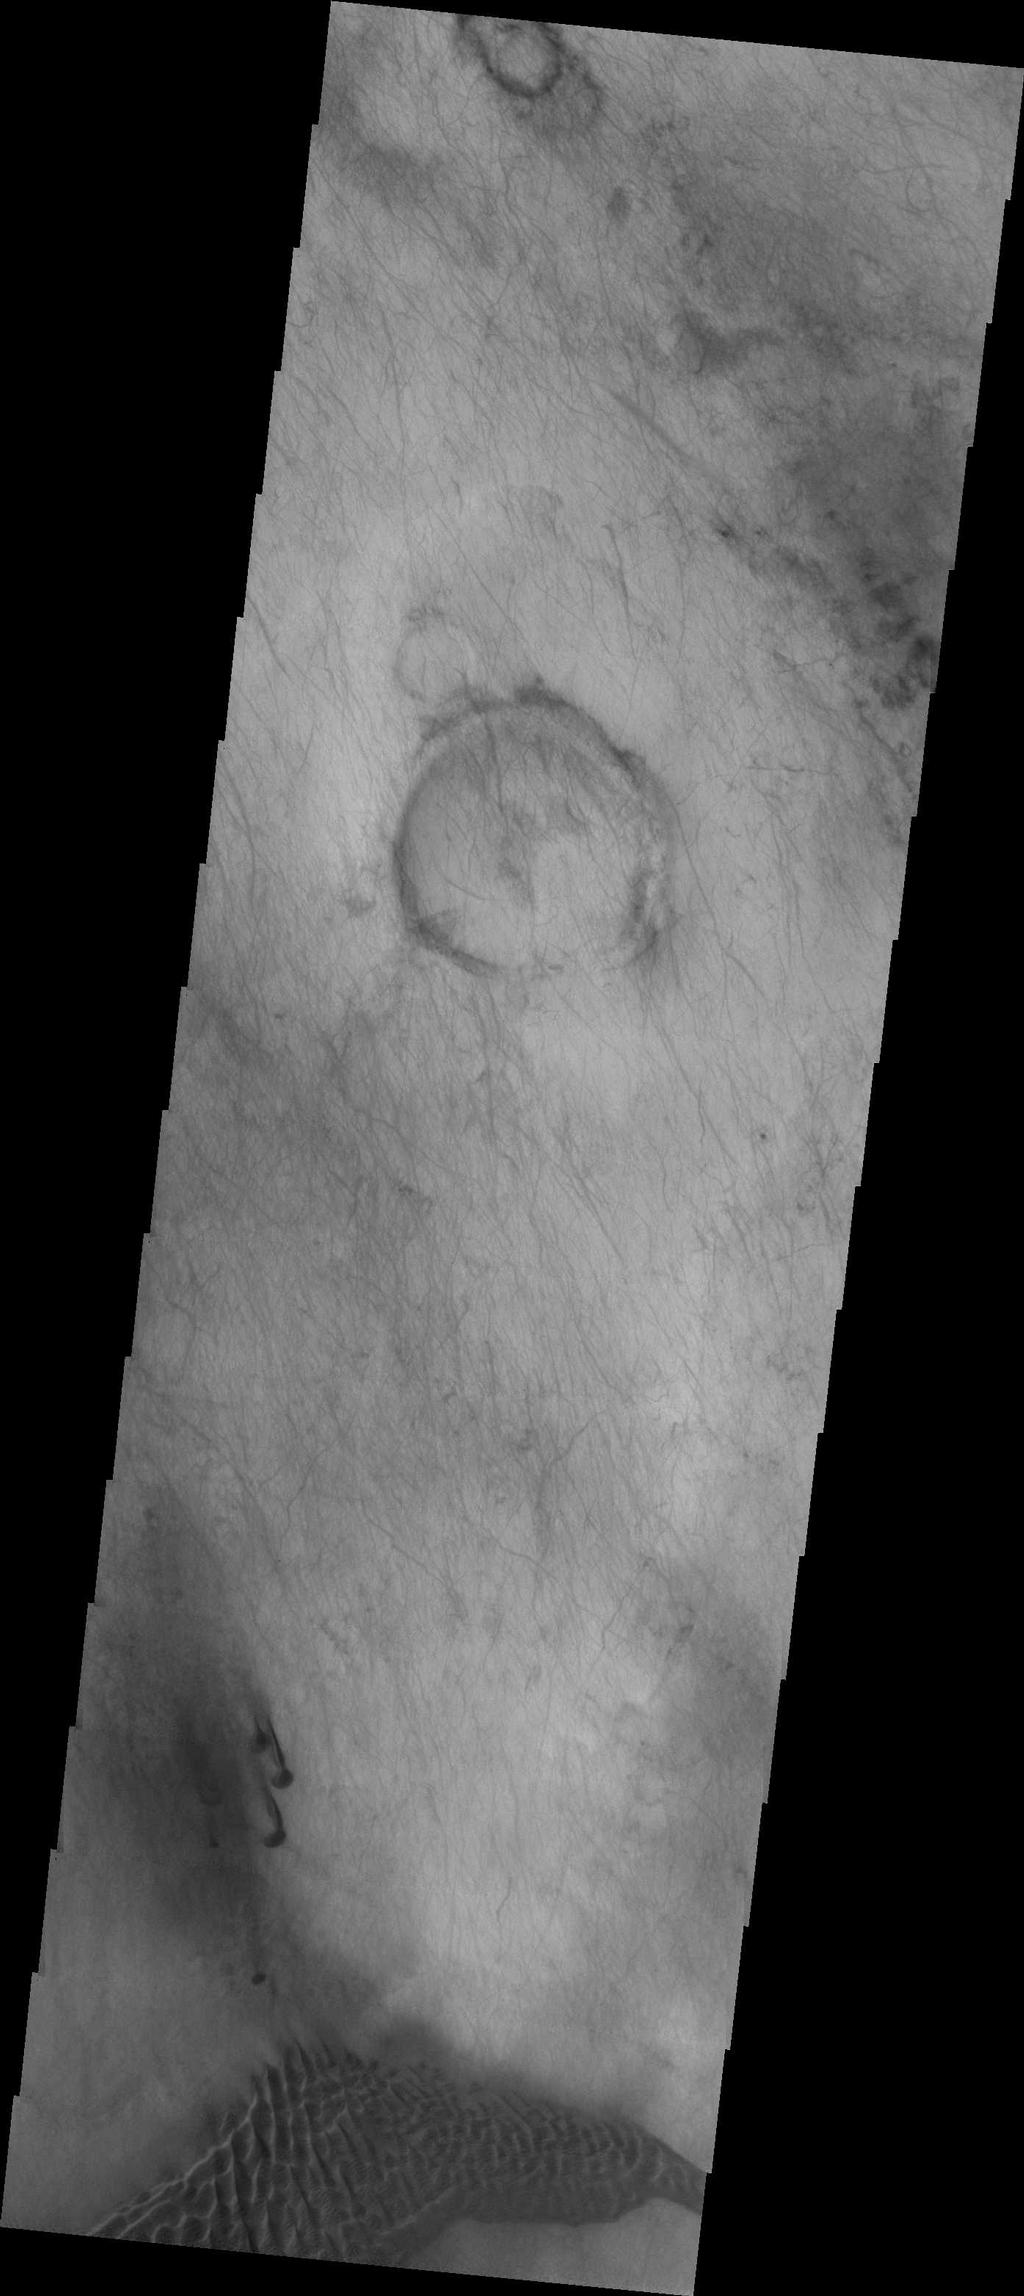 The dunes and dust devil tracks in this VIS image are located on the plains of Planum Chronium.